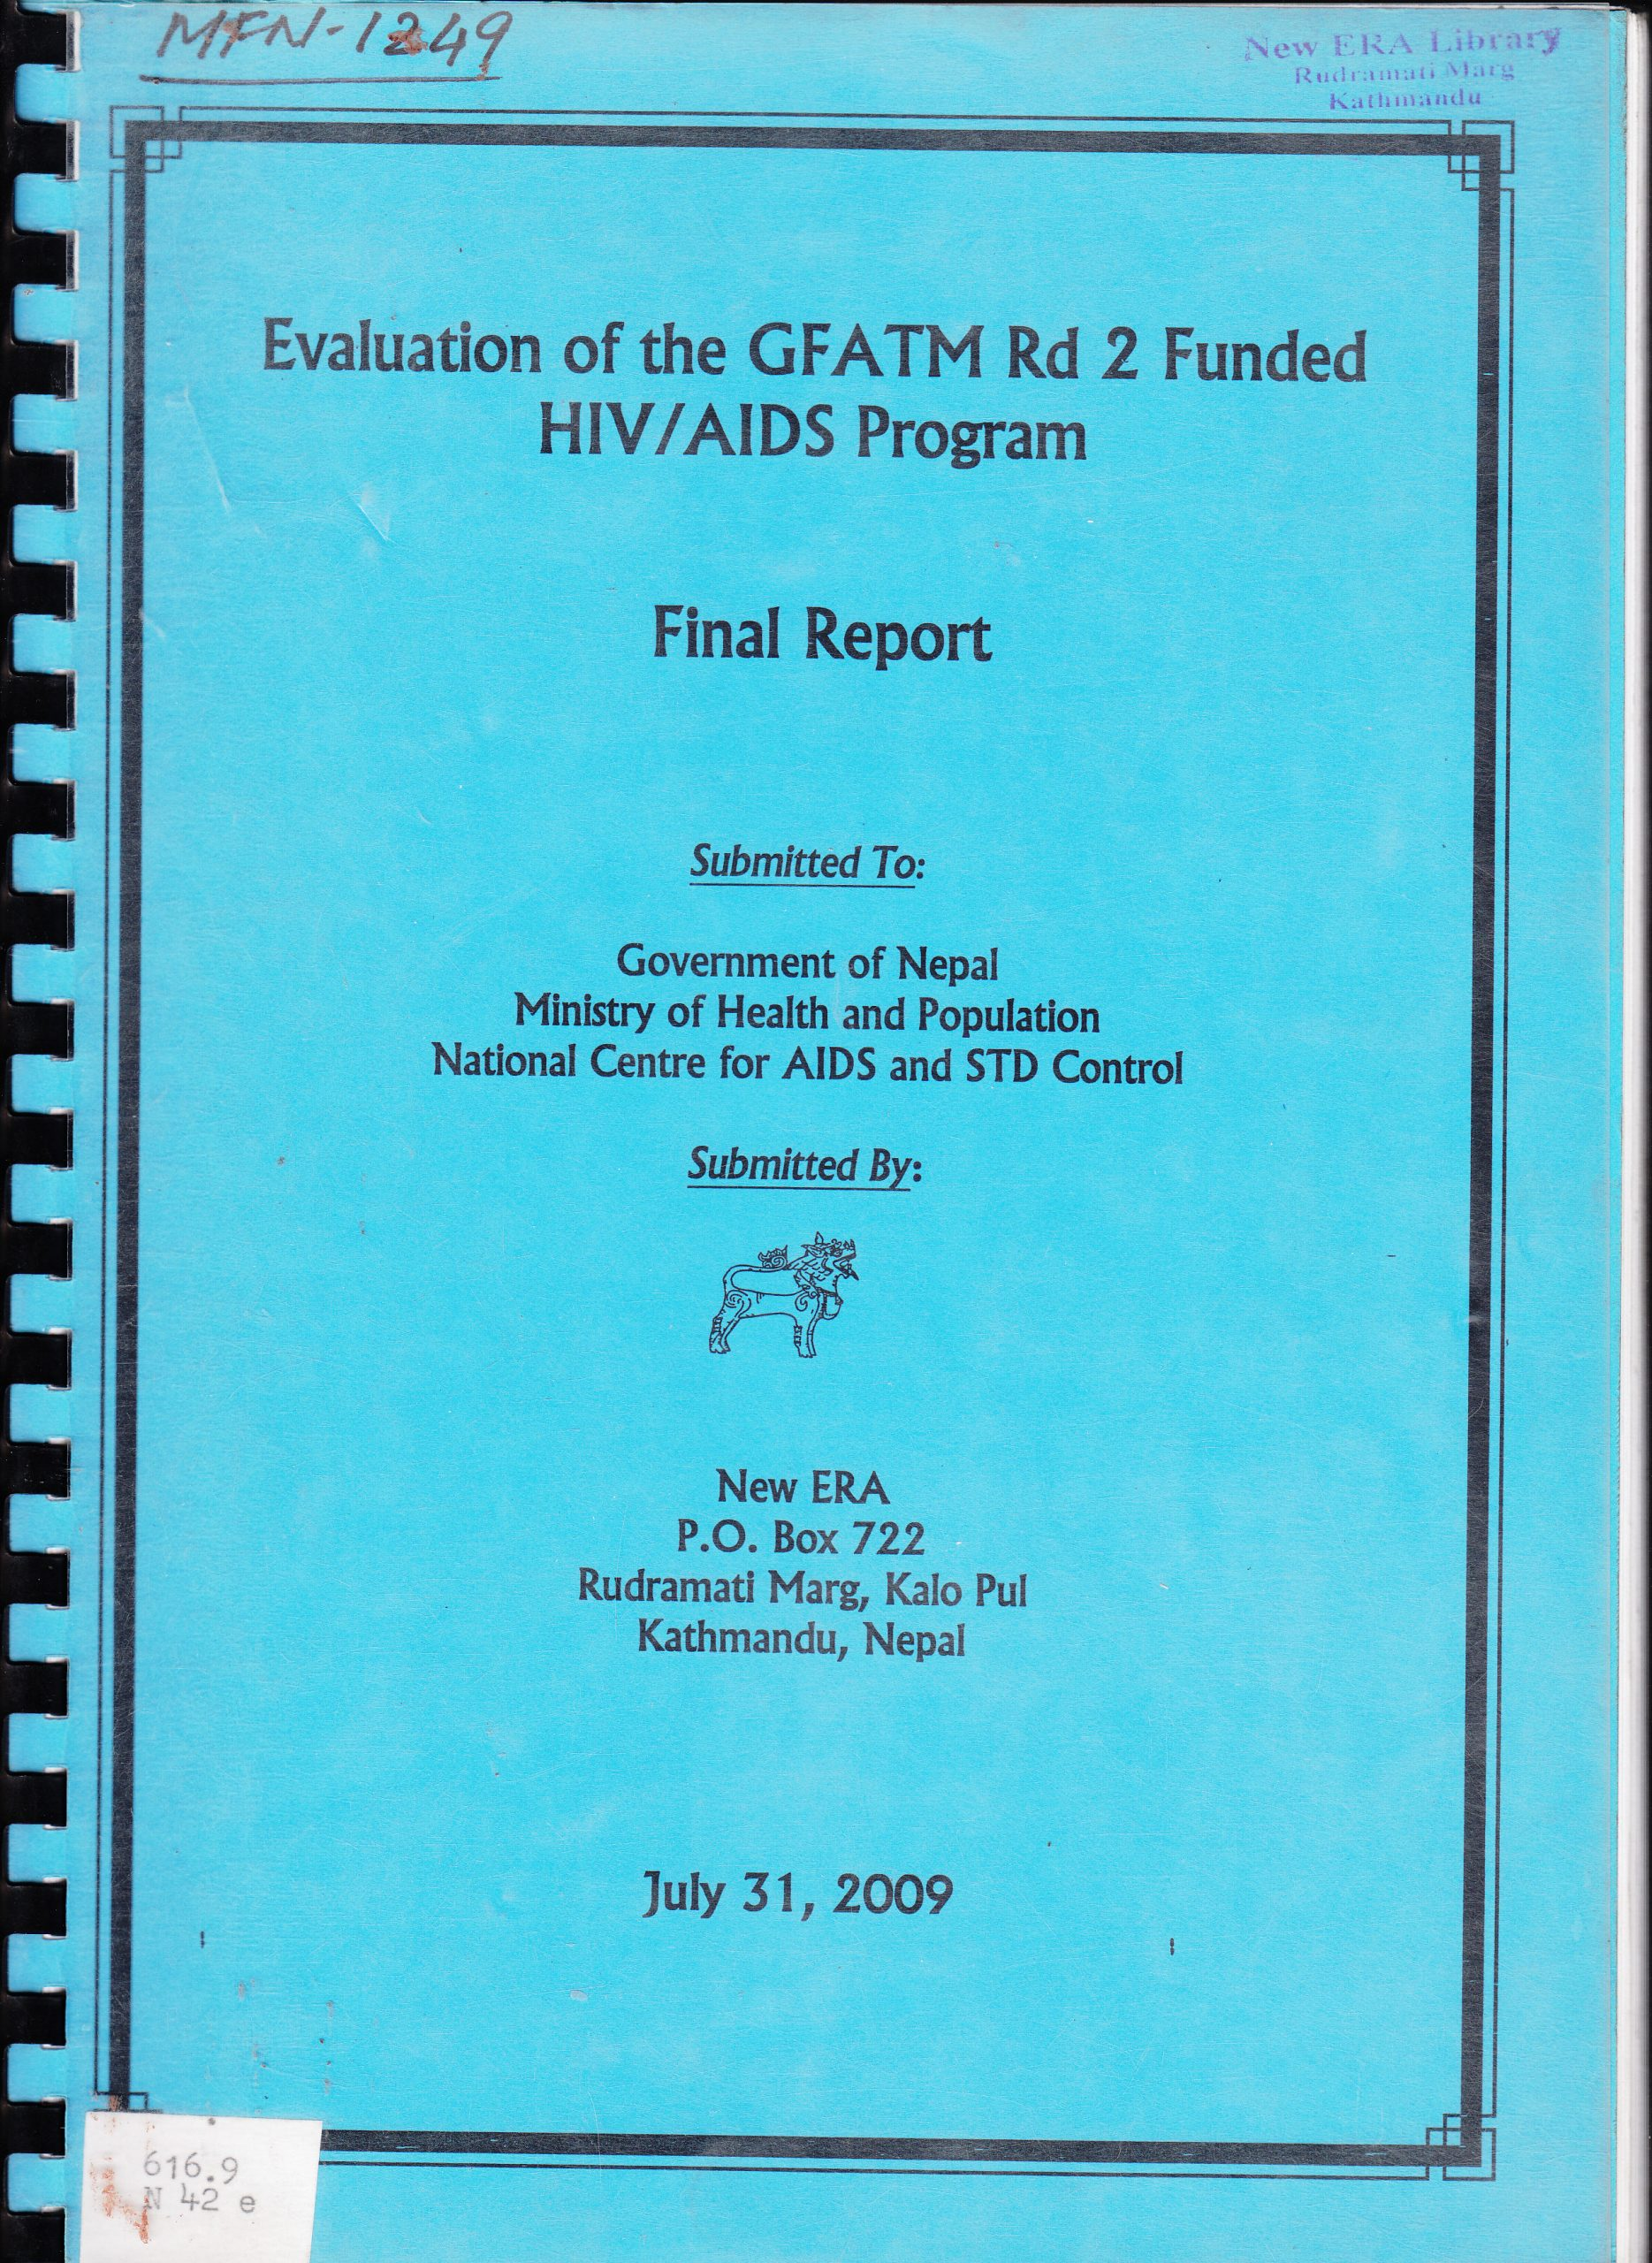 Evaluation of GFATM Rd 2 Funded HIV/AIDS Program